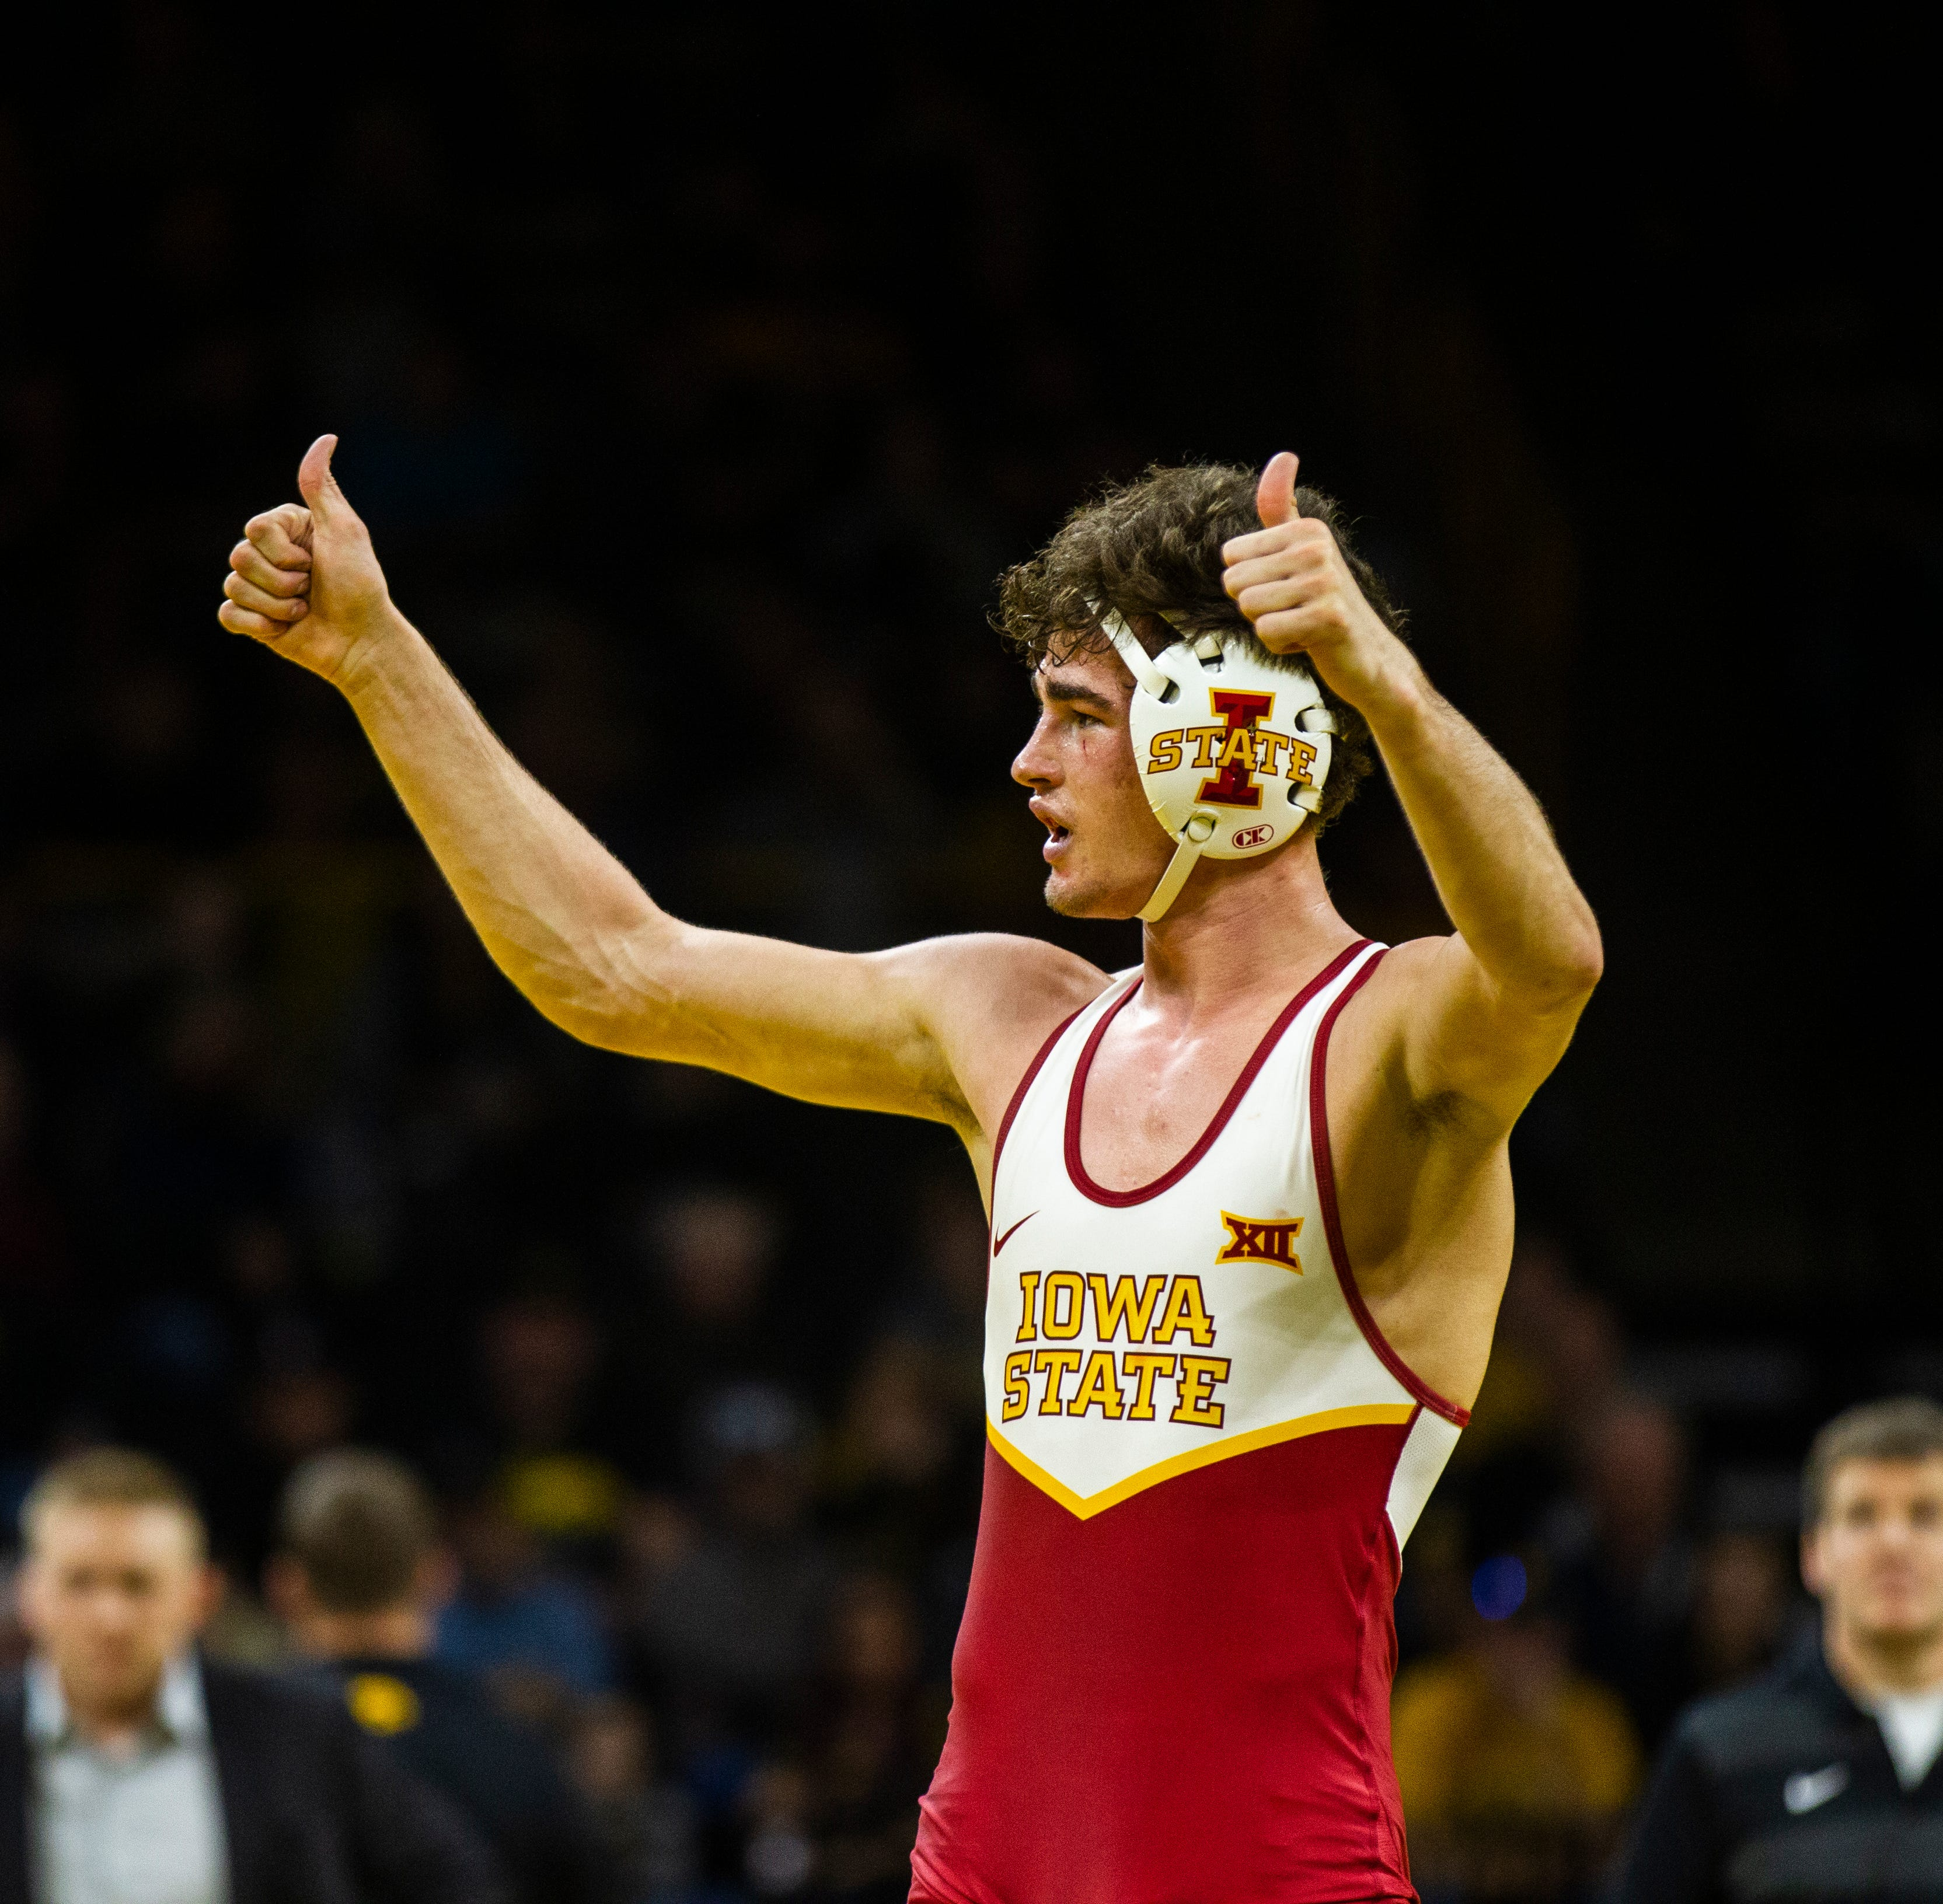 Iowa State extends dual winning streak to five by beating West Virginia